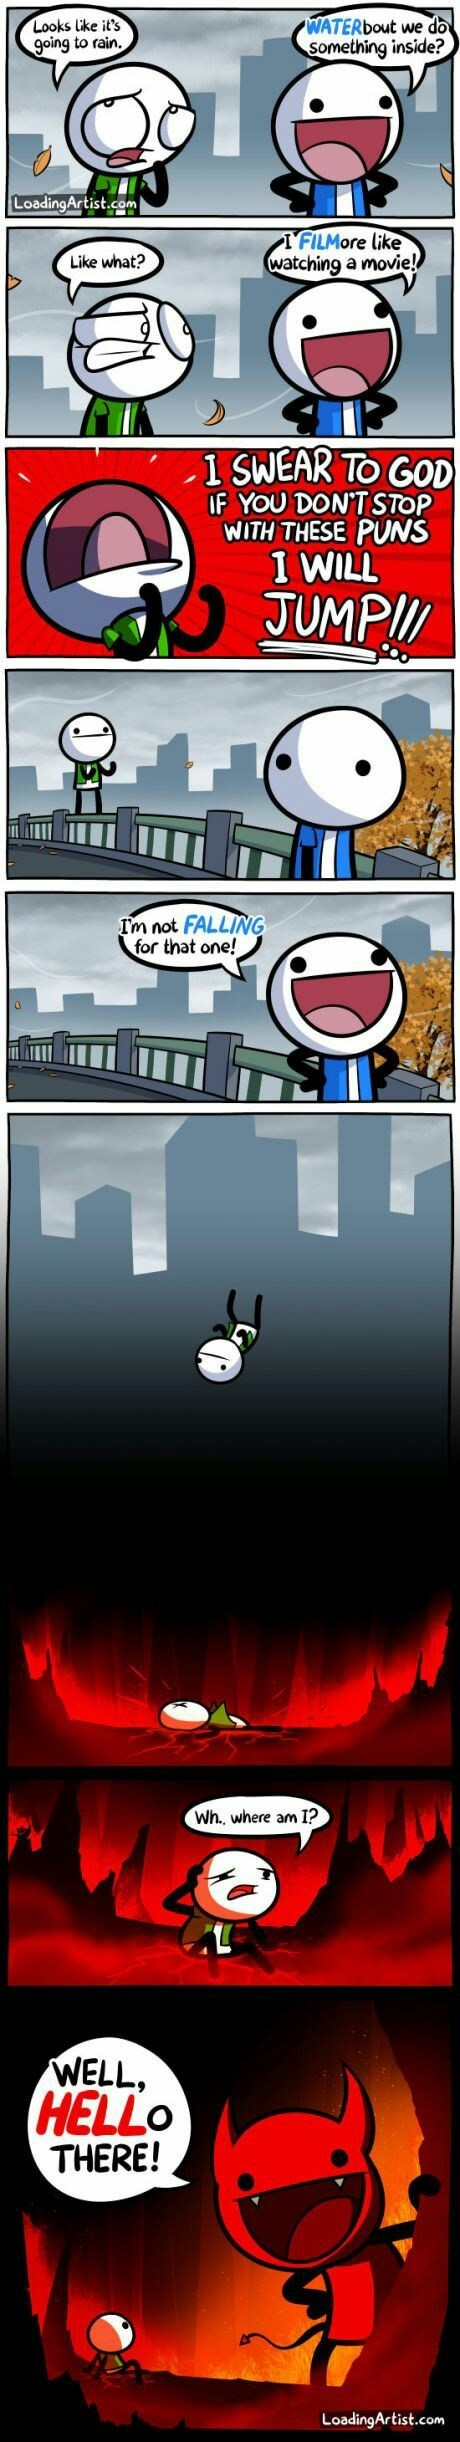 cartoon of someone making horrible puns causing friend to jump off bridge, die, and then is in hell where the devil makes even worse puns.